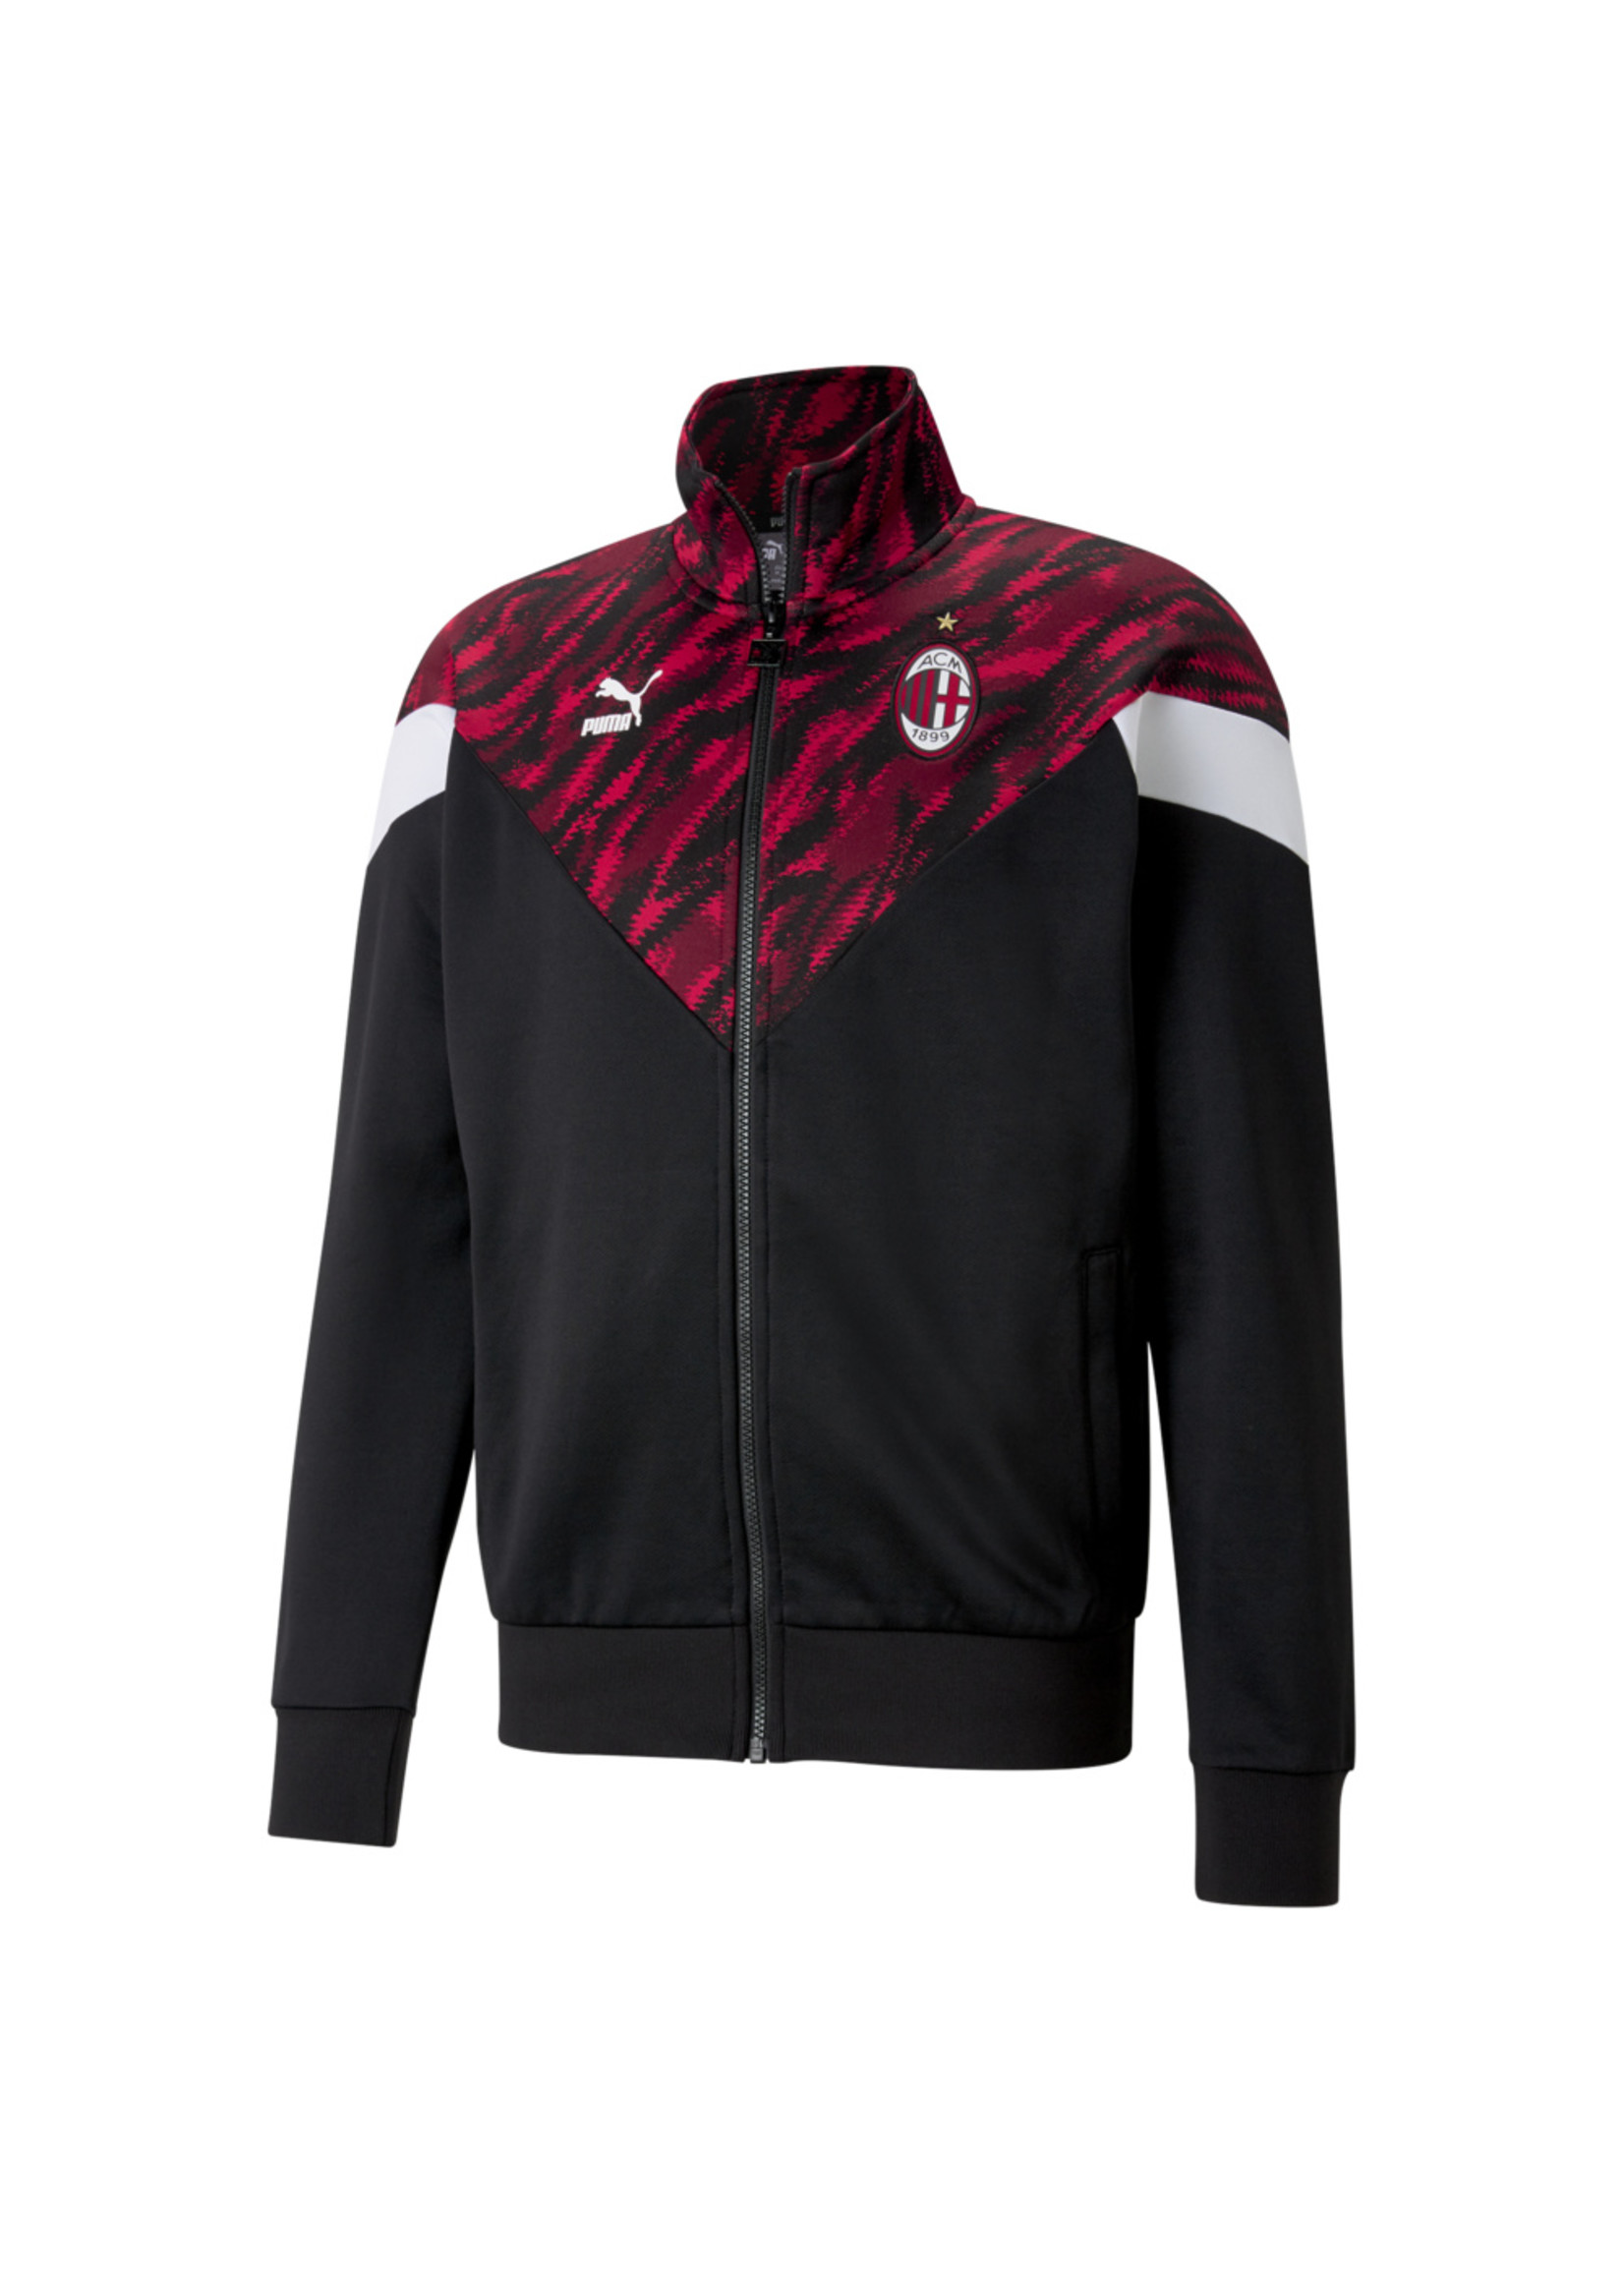 Puma AC Milan Iconic MCS Graphic Track Jacket